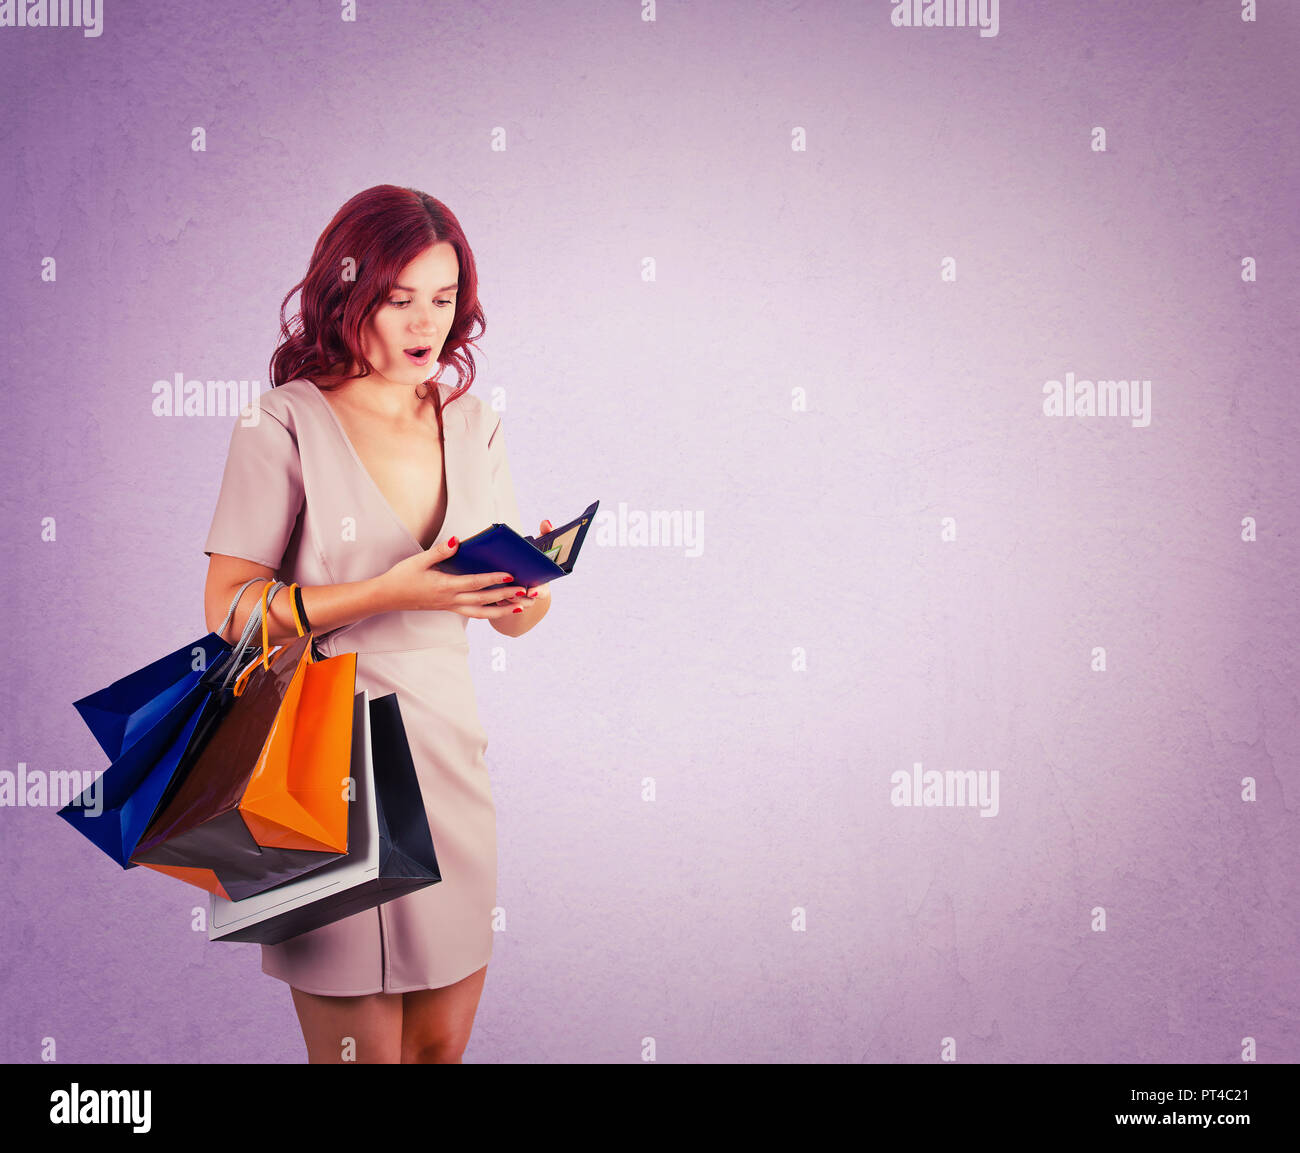 Shocked woman shopaholic carrying bags holding a empty wallet, has no money for shopping in her pouch isolated over purple background with copy space. - Stock Image